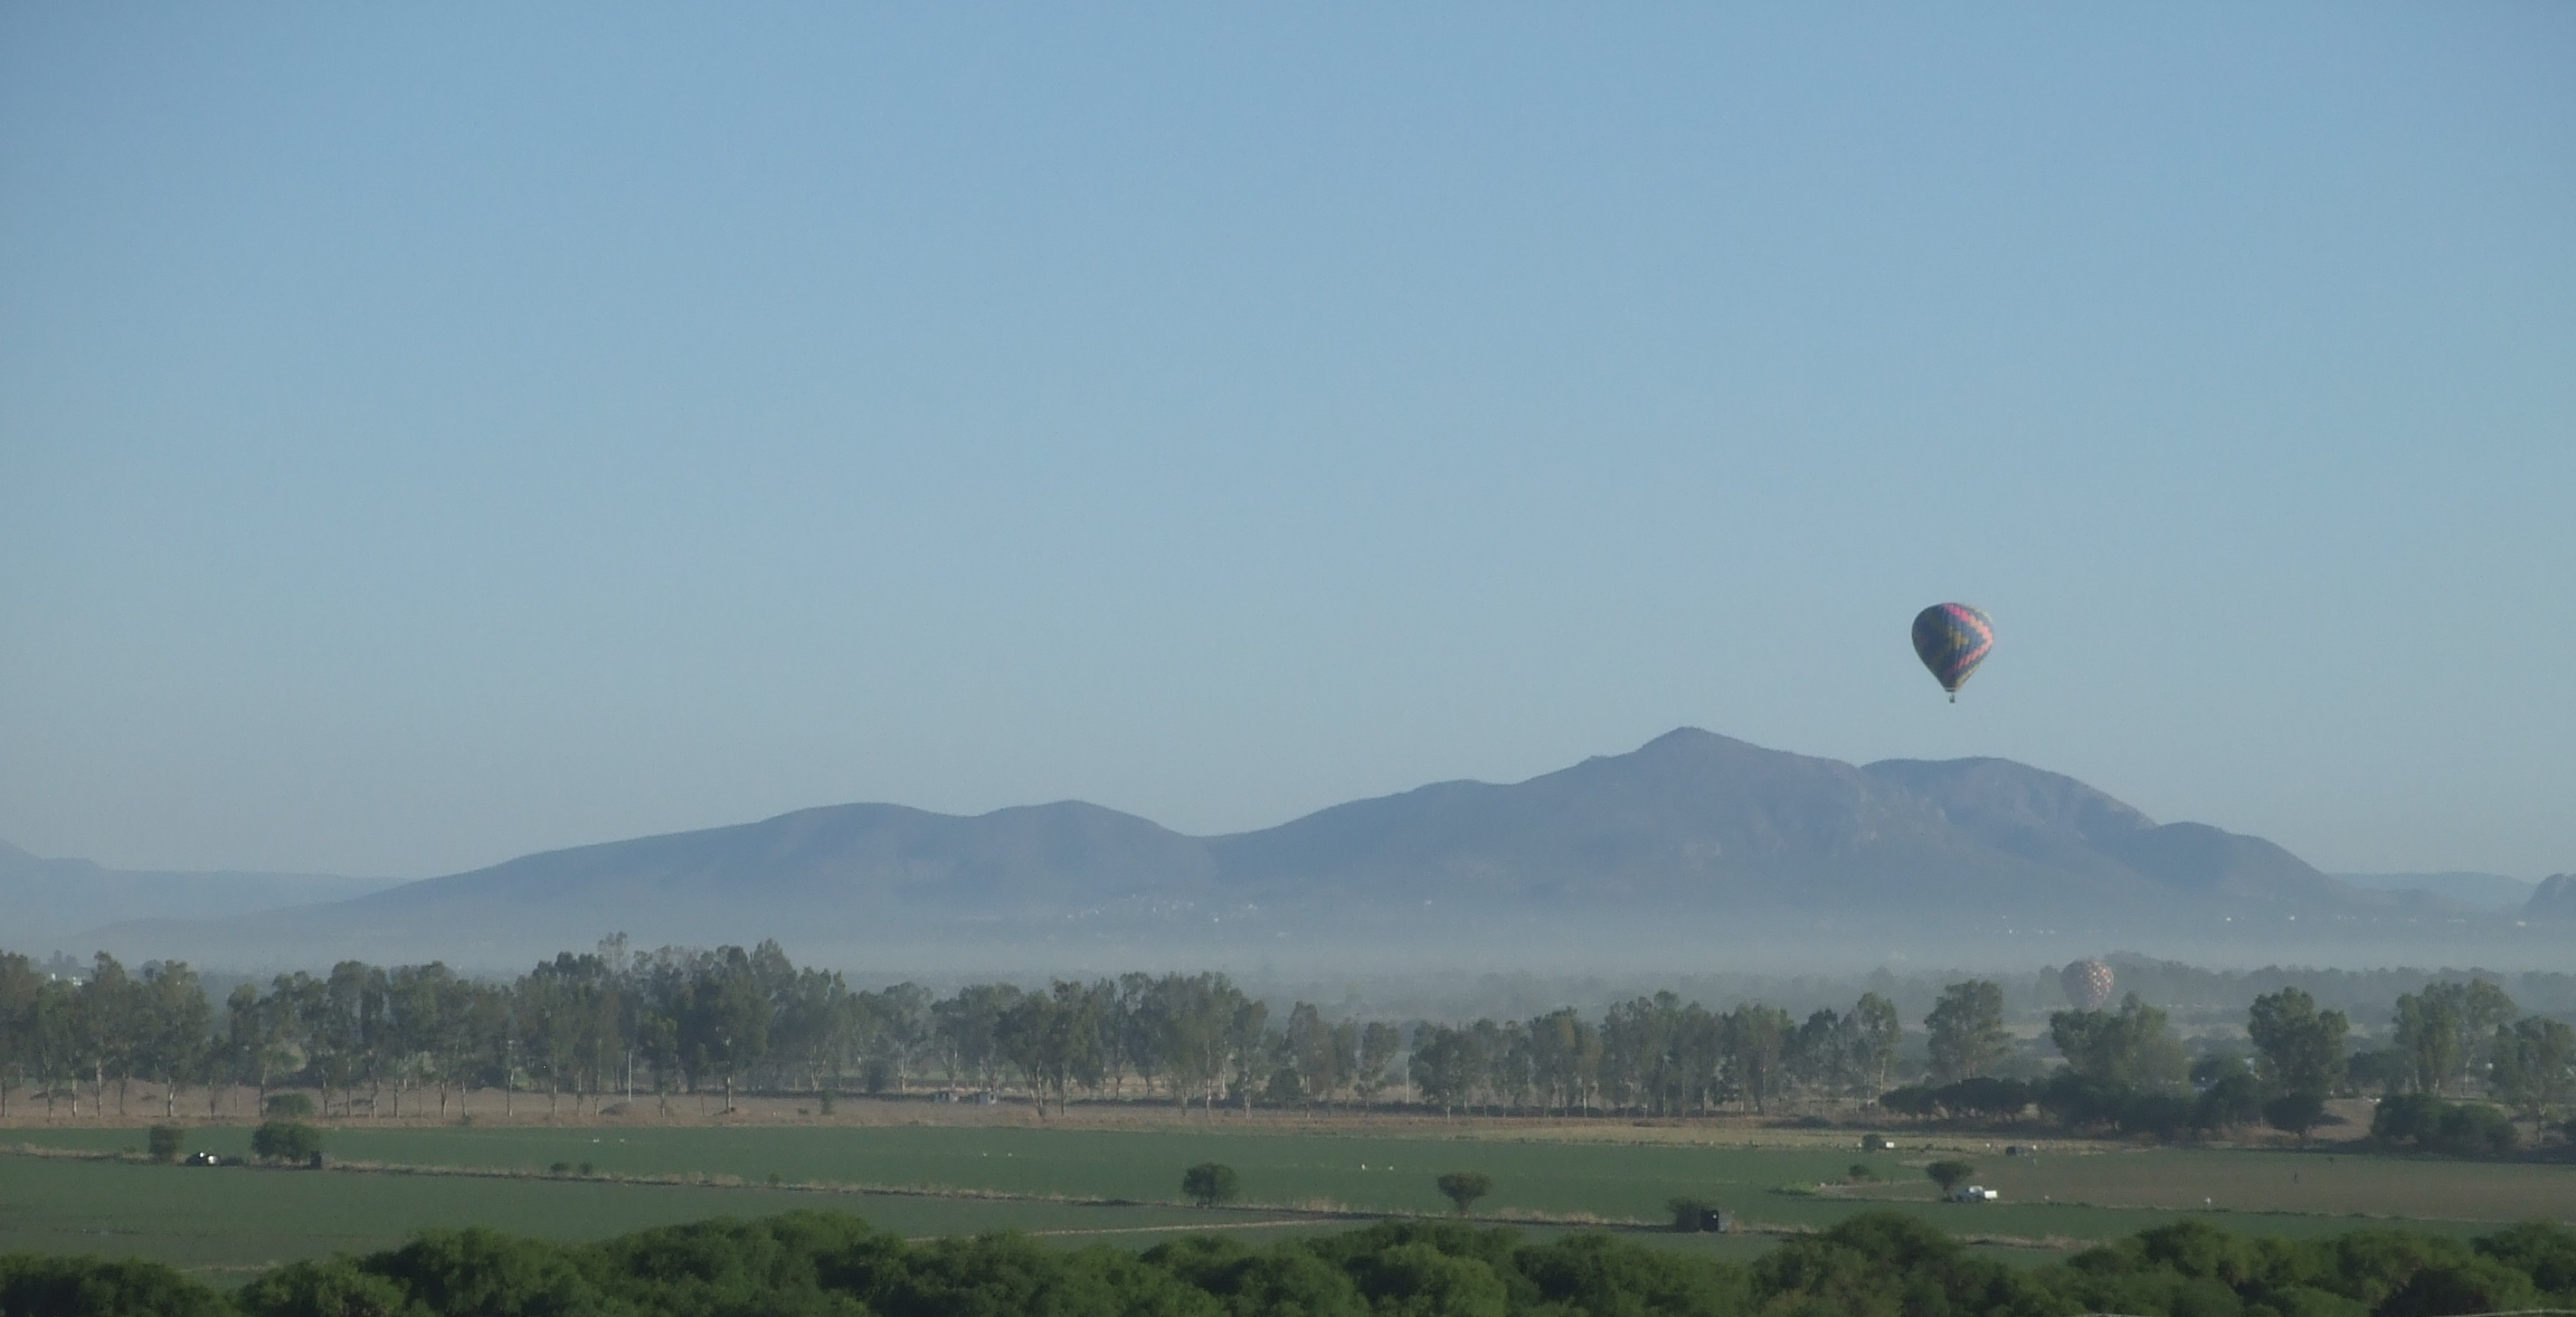 Hot Air Ballooning in Tequisquiapan